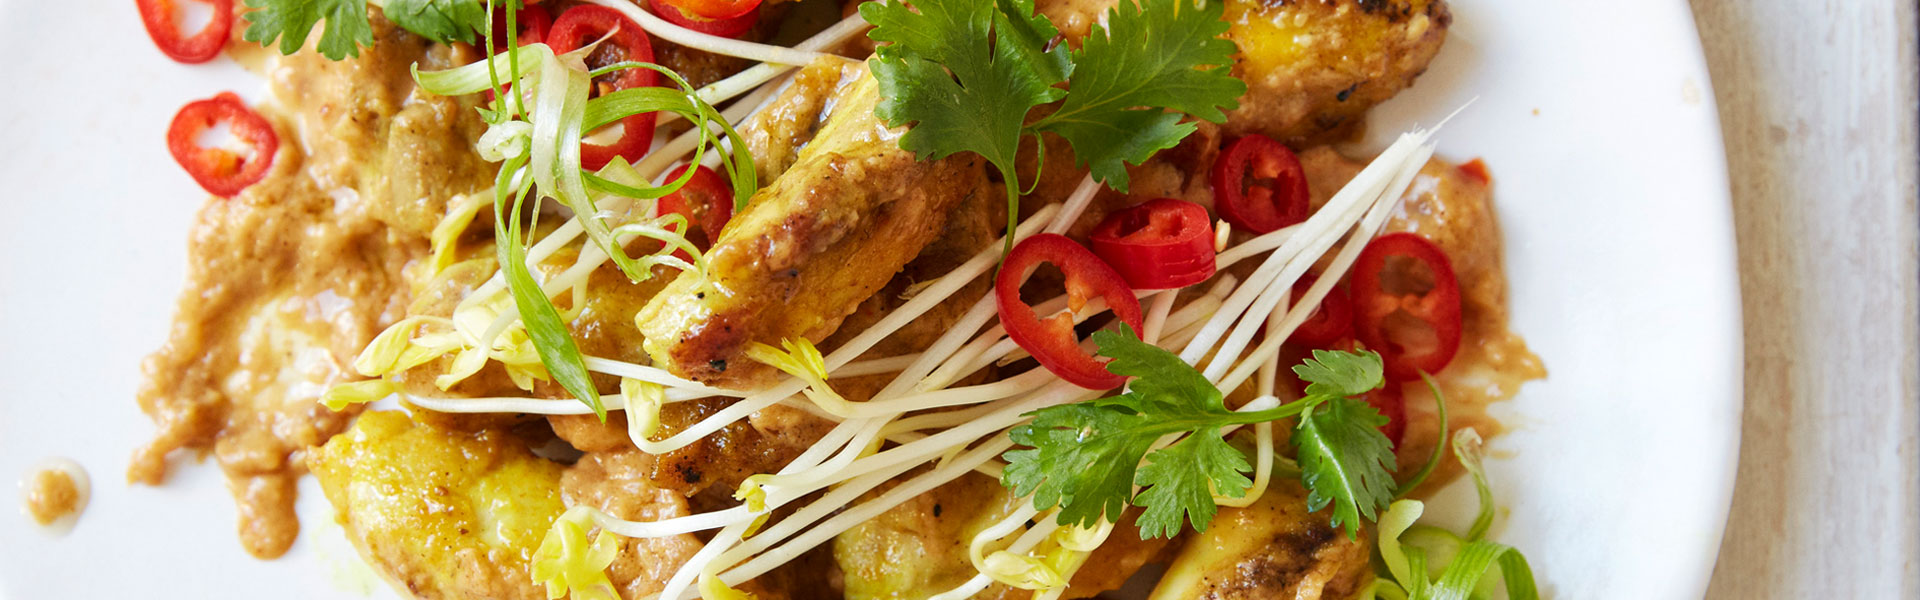 Ching He Huang Satay Chicken Stir Fry With Spicy Coconut Peanut